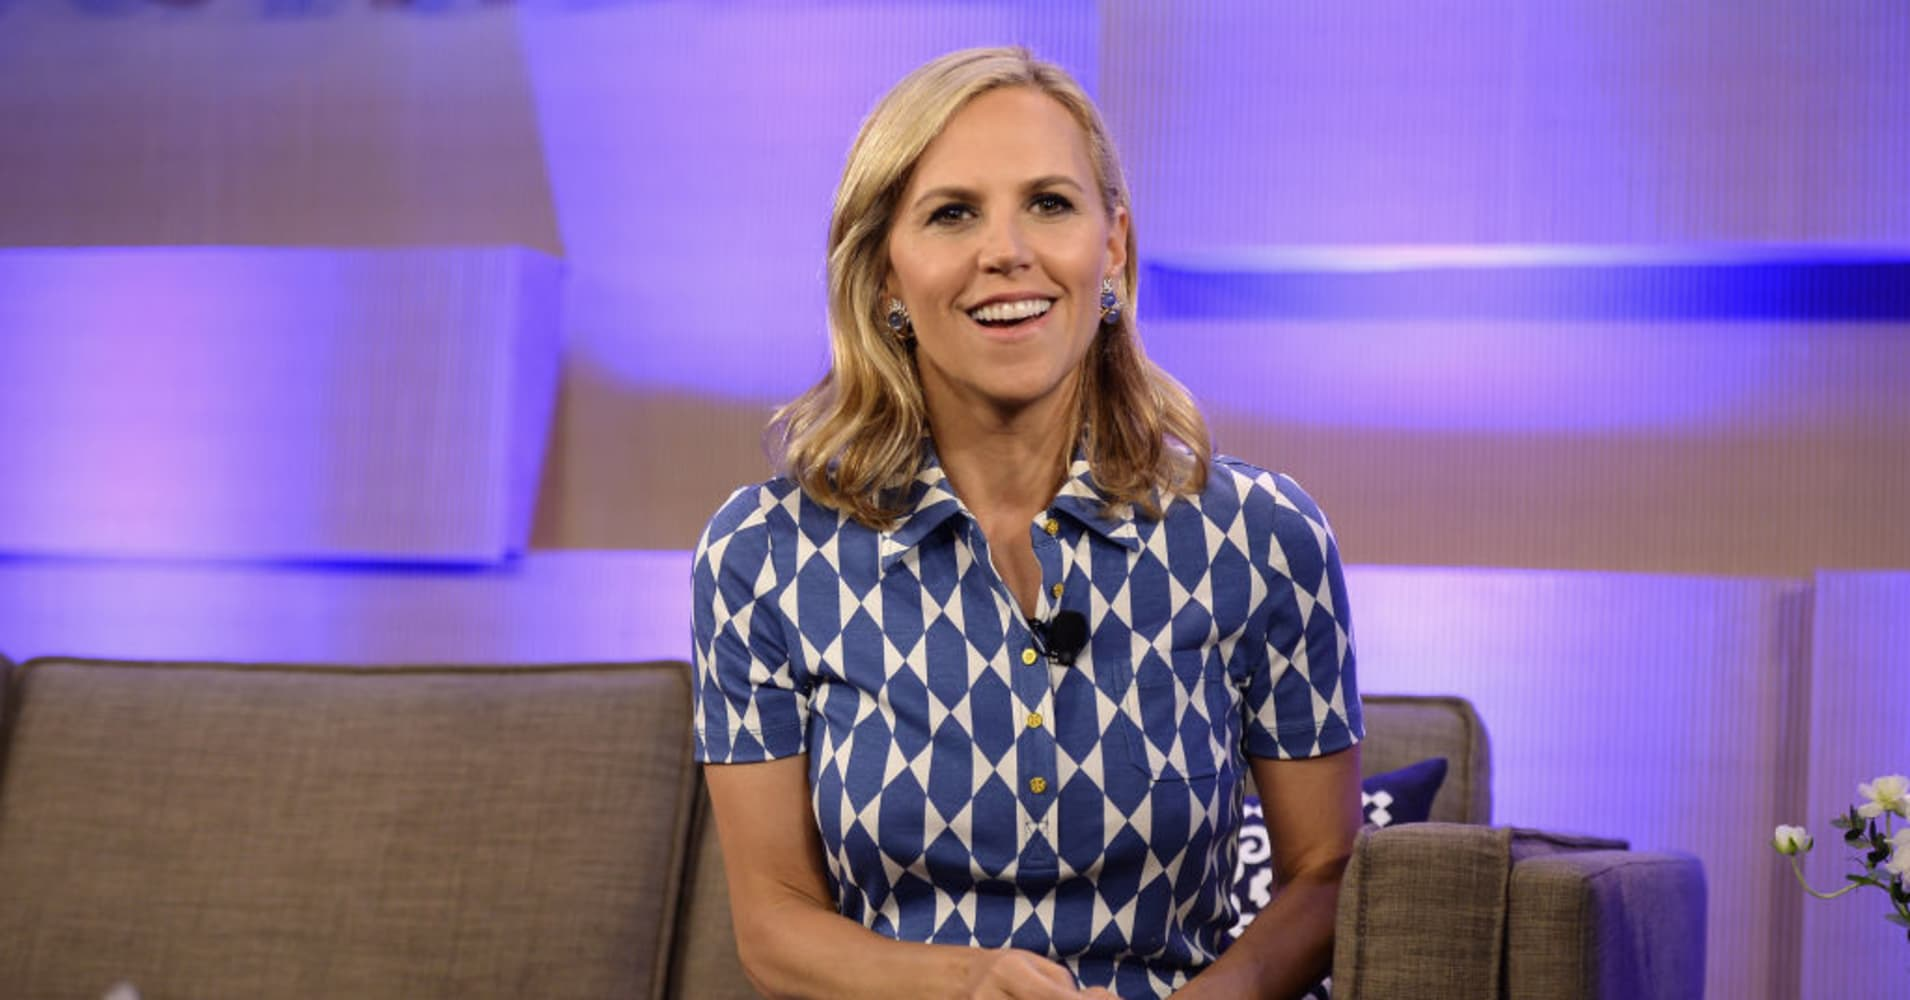 Tory Burch speaking at the Vanity Fair Founders Fair